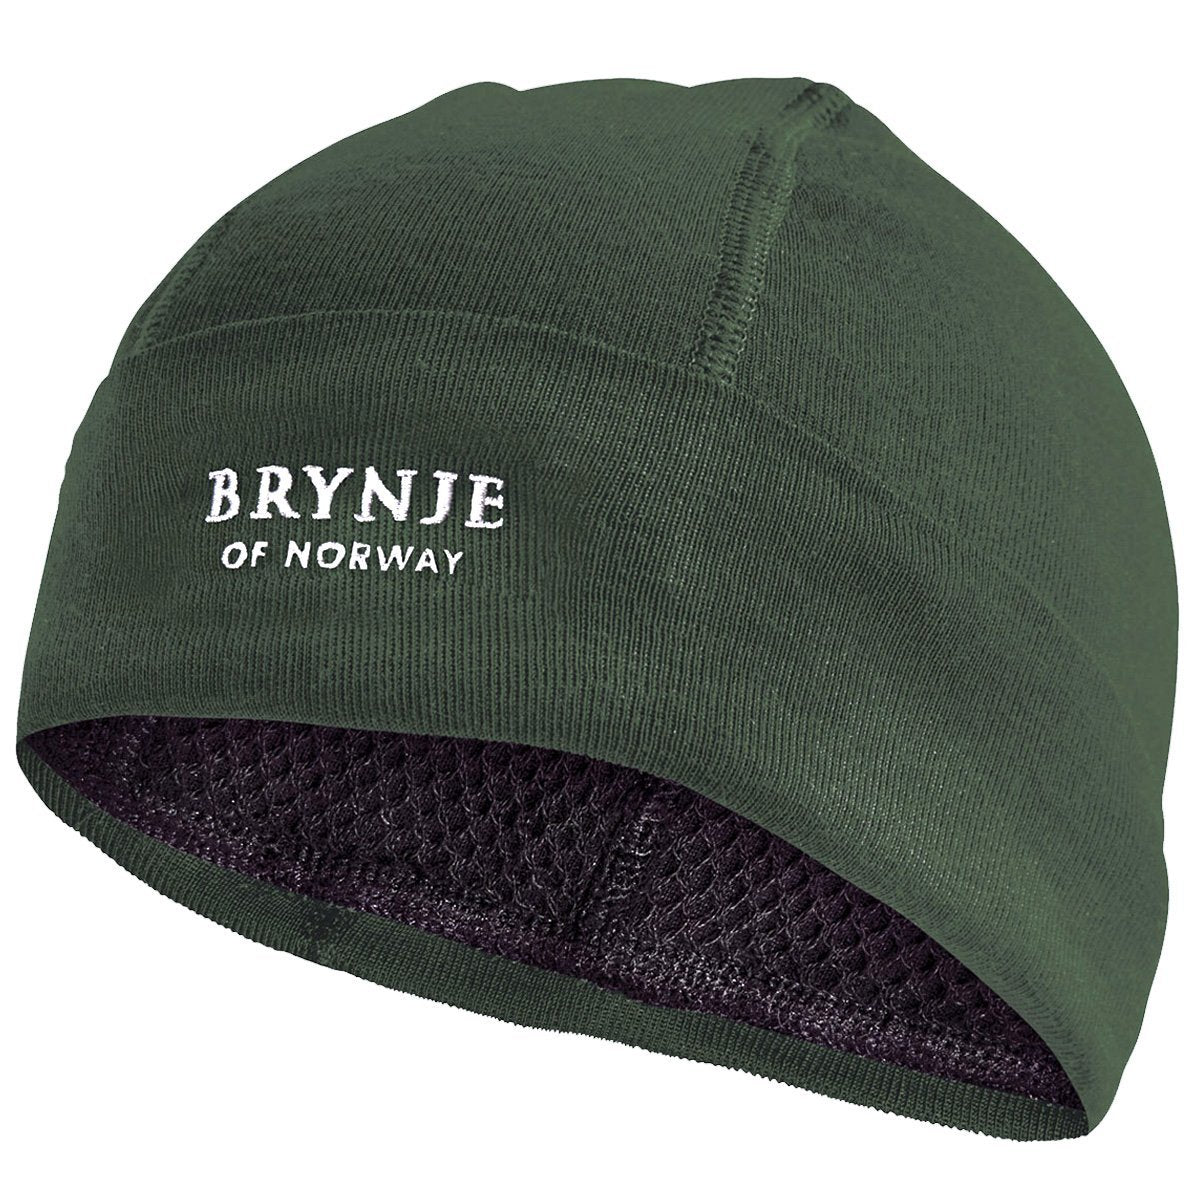 Brynje Super Thermo Beanie Hat | UKMCPro